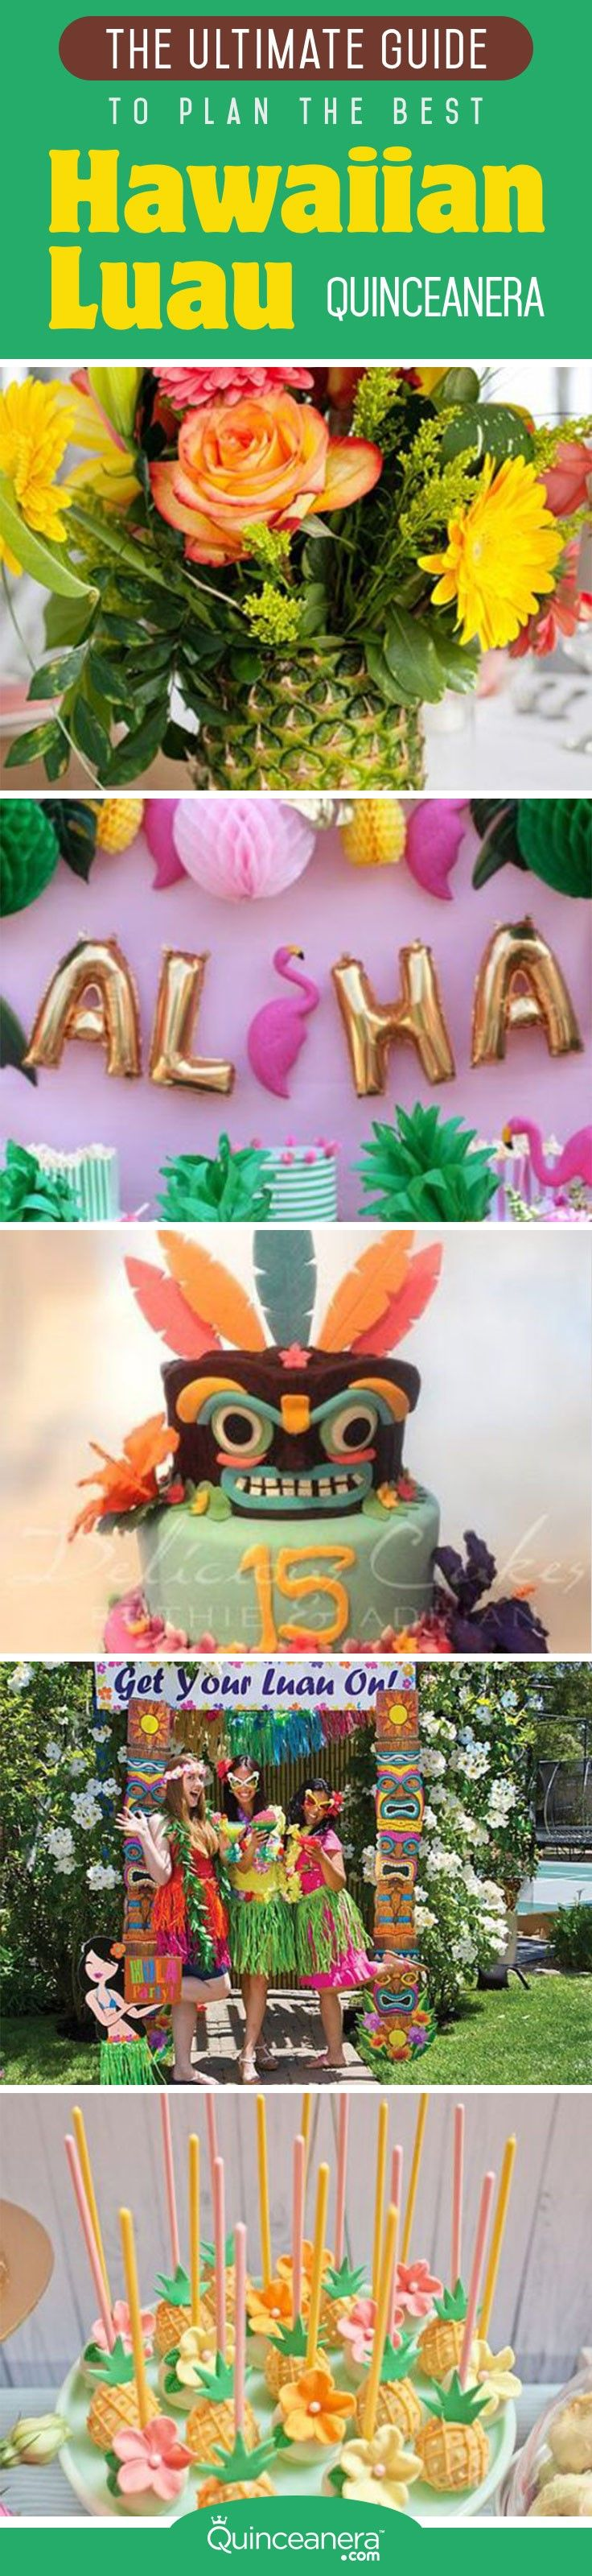 Say aloha to these bright ideas to plan a luau quinceanera! From quinceanera dresses to cakes, find everything you need to transport your guests to a tropical paradise. - See more at: http://www.quinceanera.com/decorations-themes/hawaiian-luau-quinceanera/#sthash.1skvZRFB.dpuf